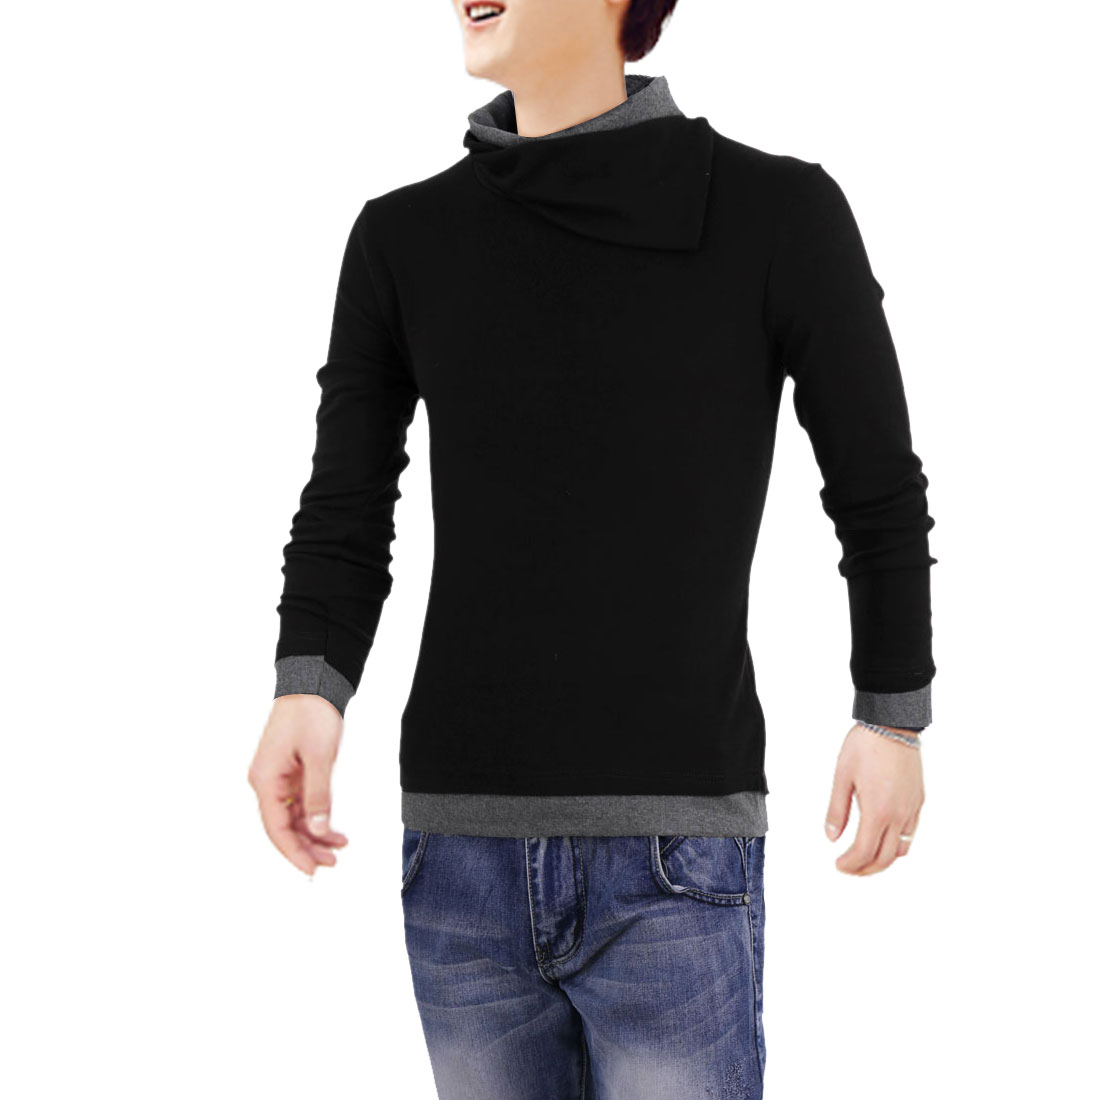 Men Cowl Neck Pullover Long Sleeve Stretchy Casual Shirt Black S